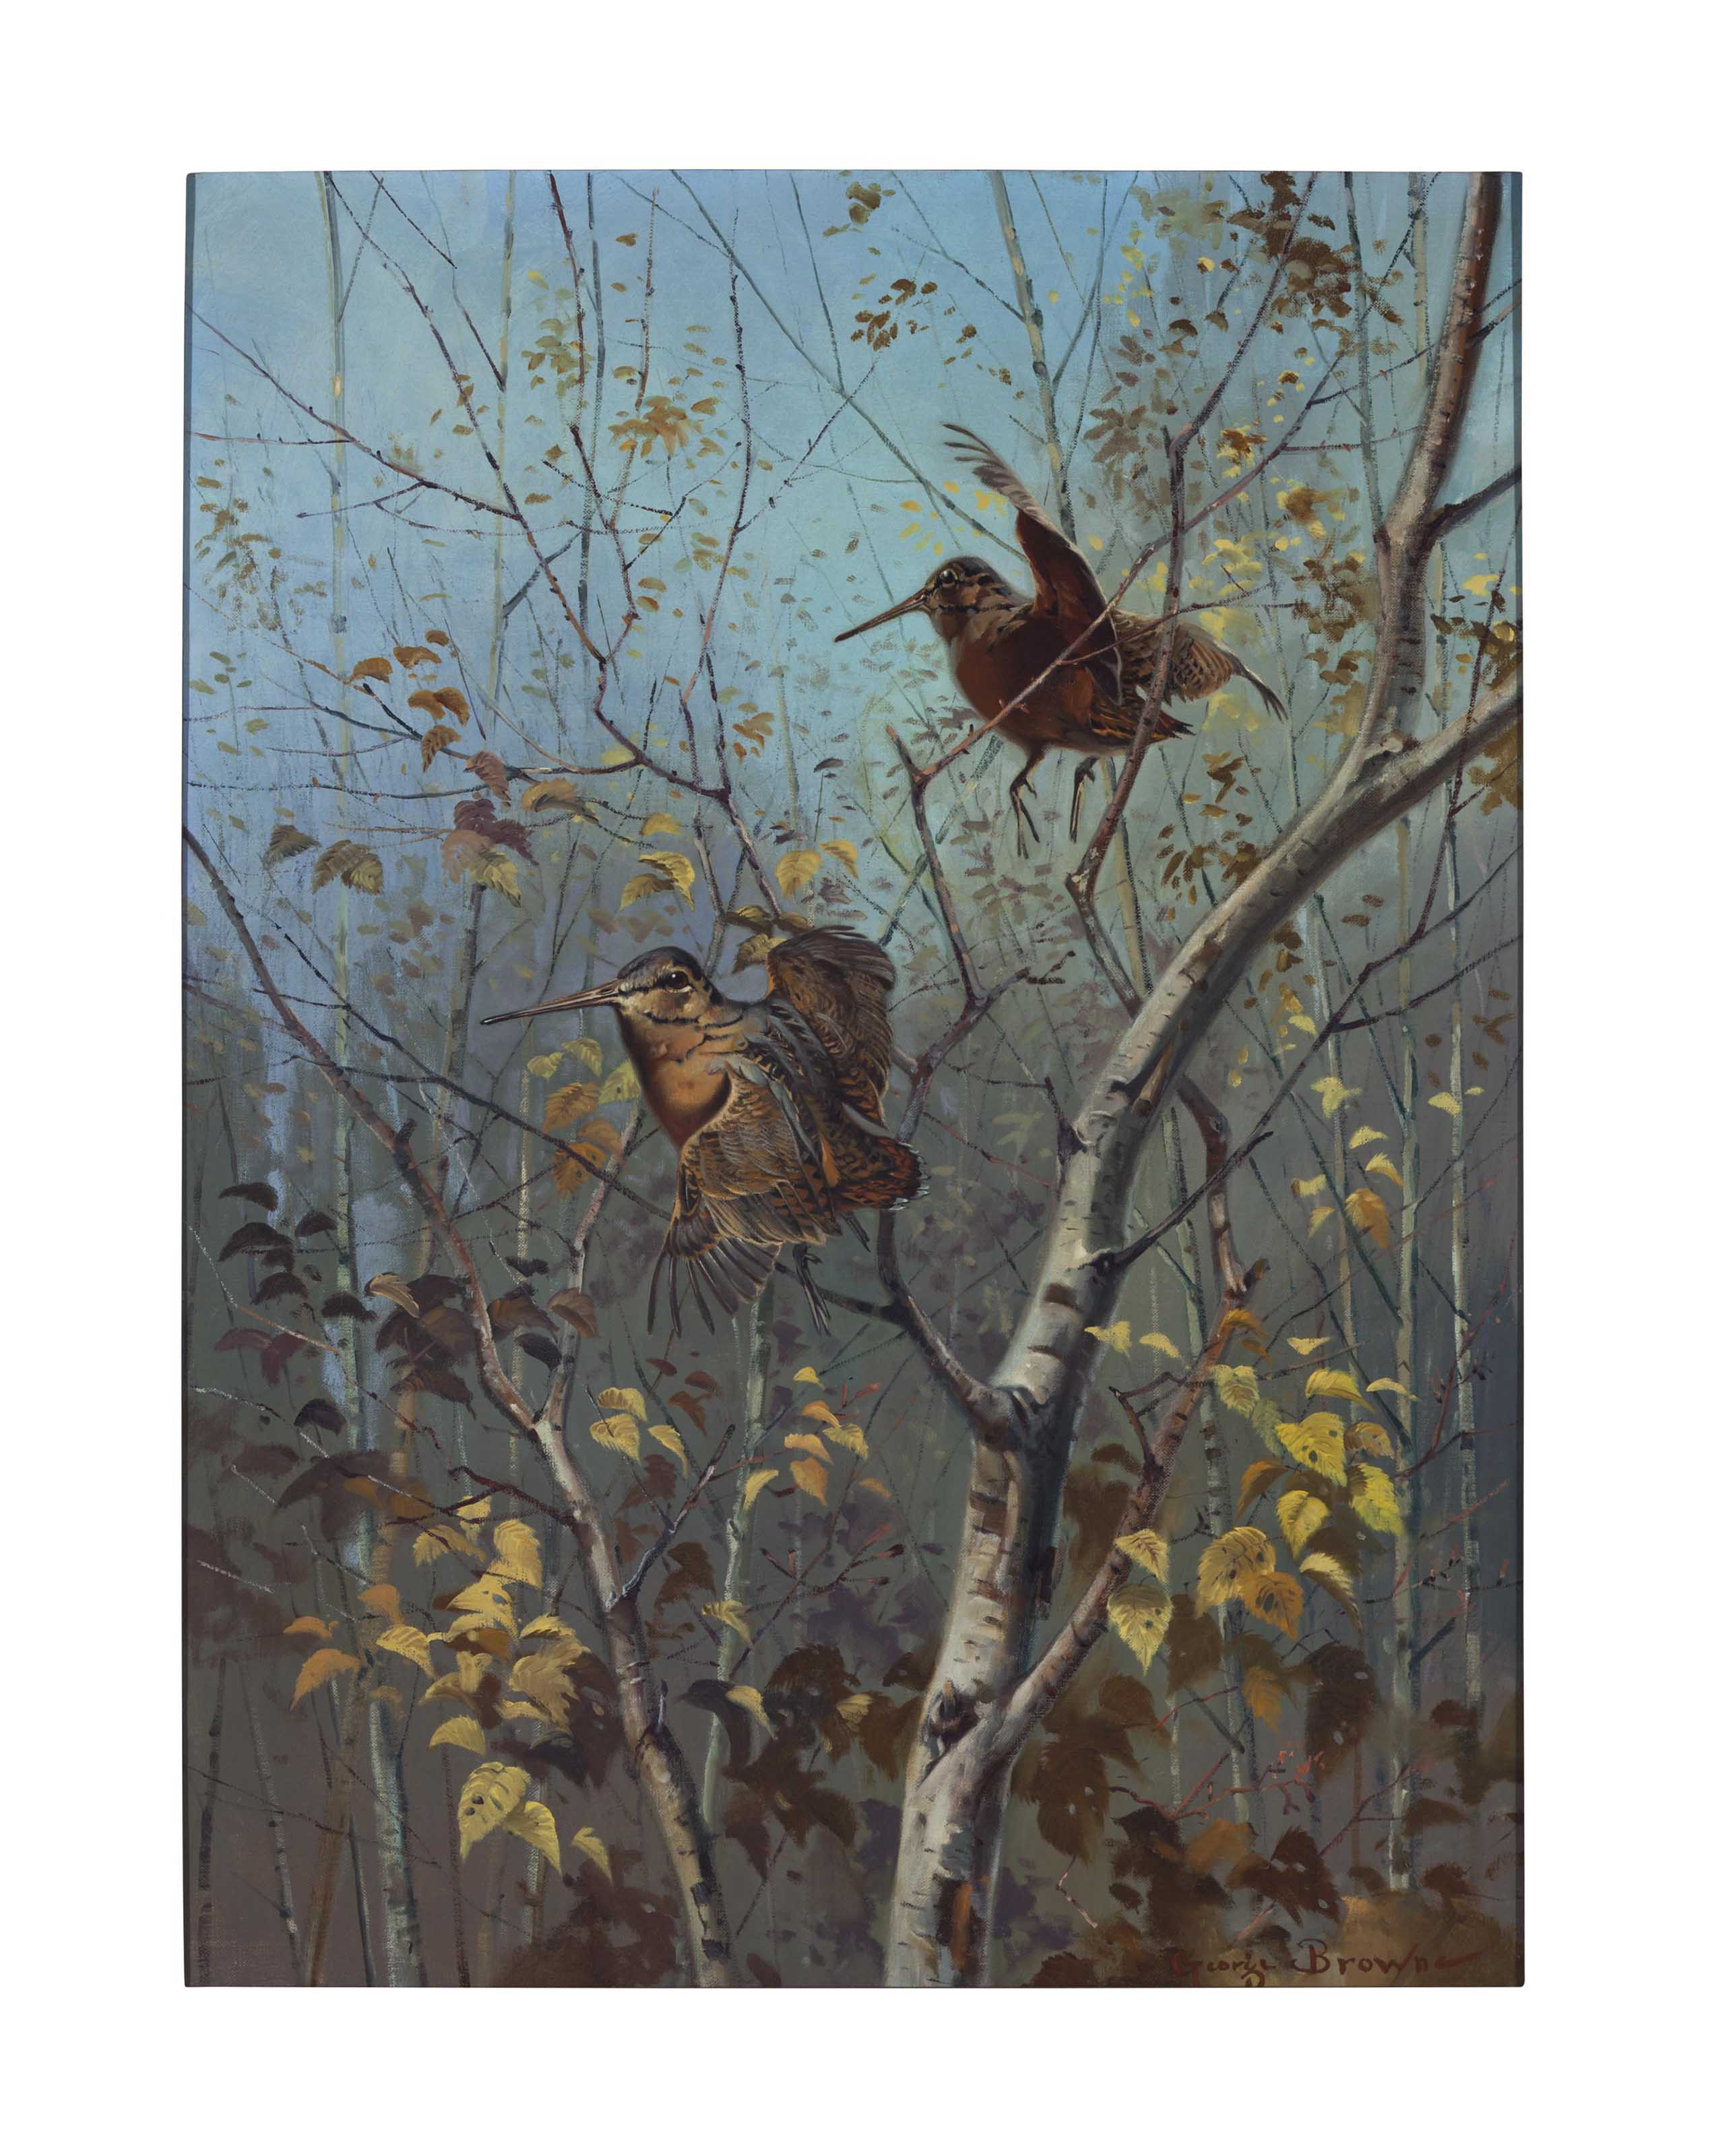 Autumn Cover, Woodcock